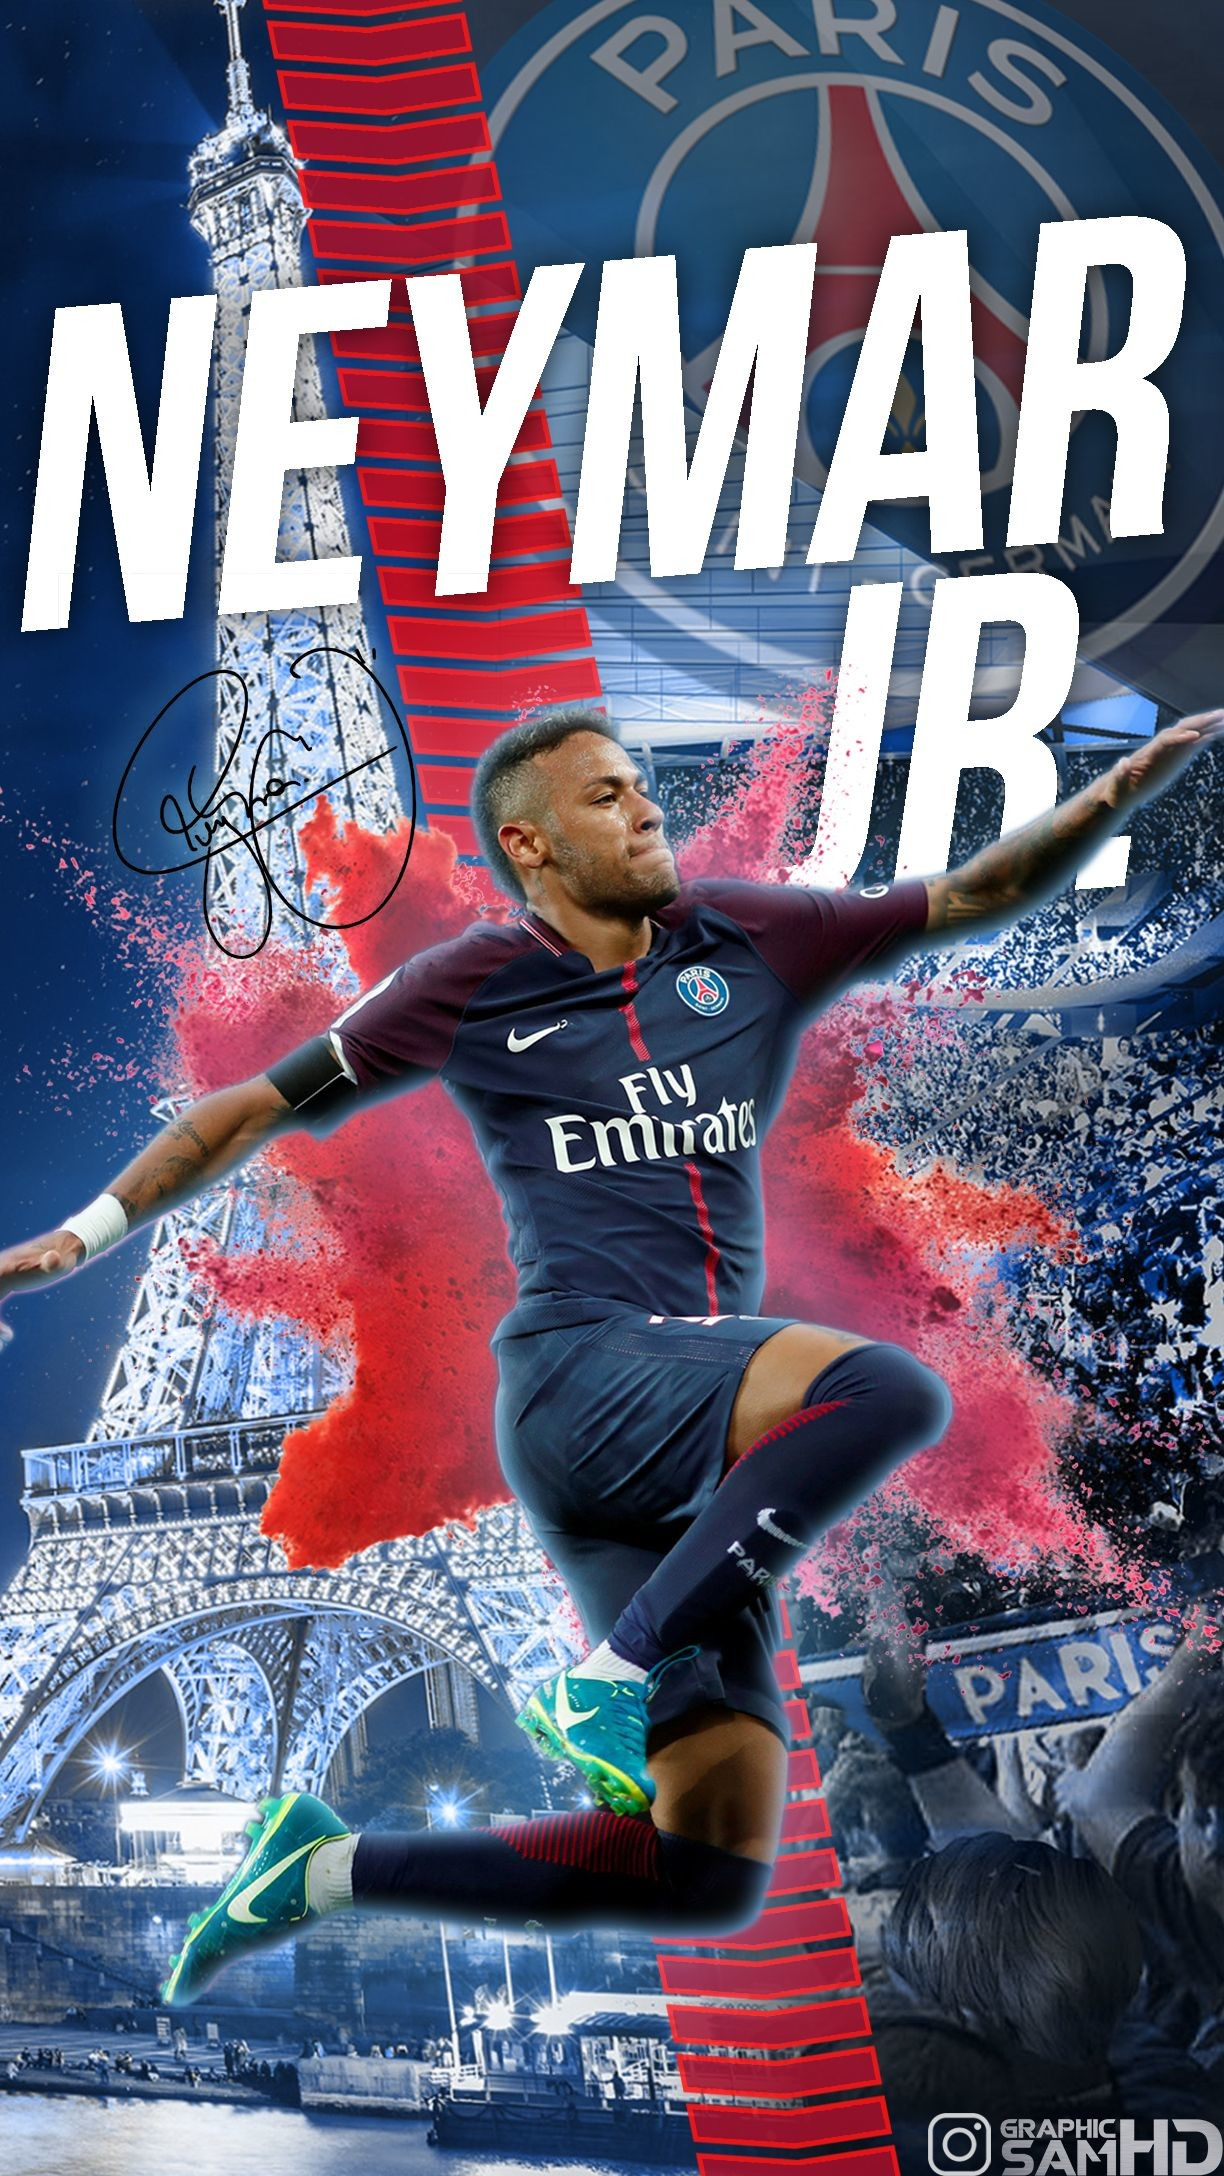 Wallpaper Football Paris Profil Pemain Sepak Bola